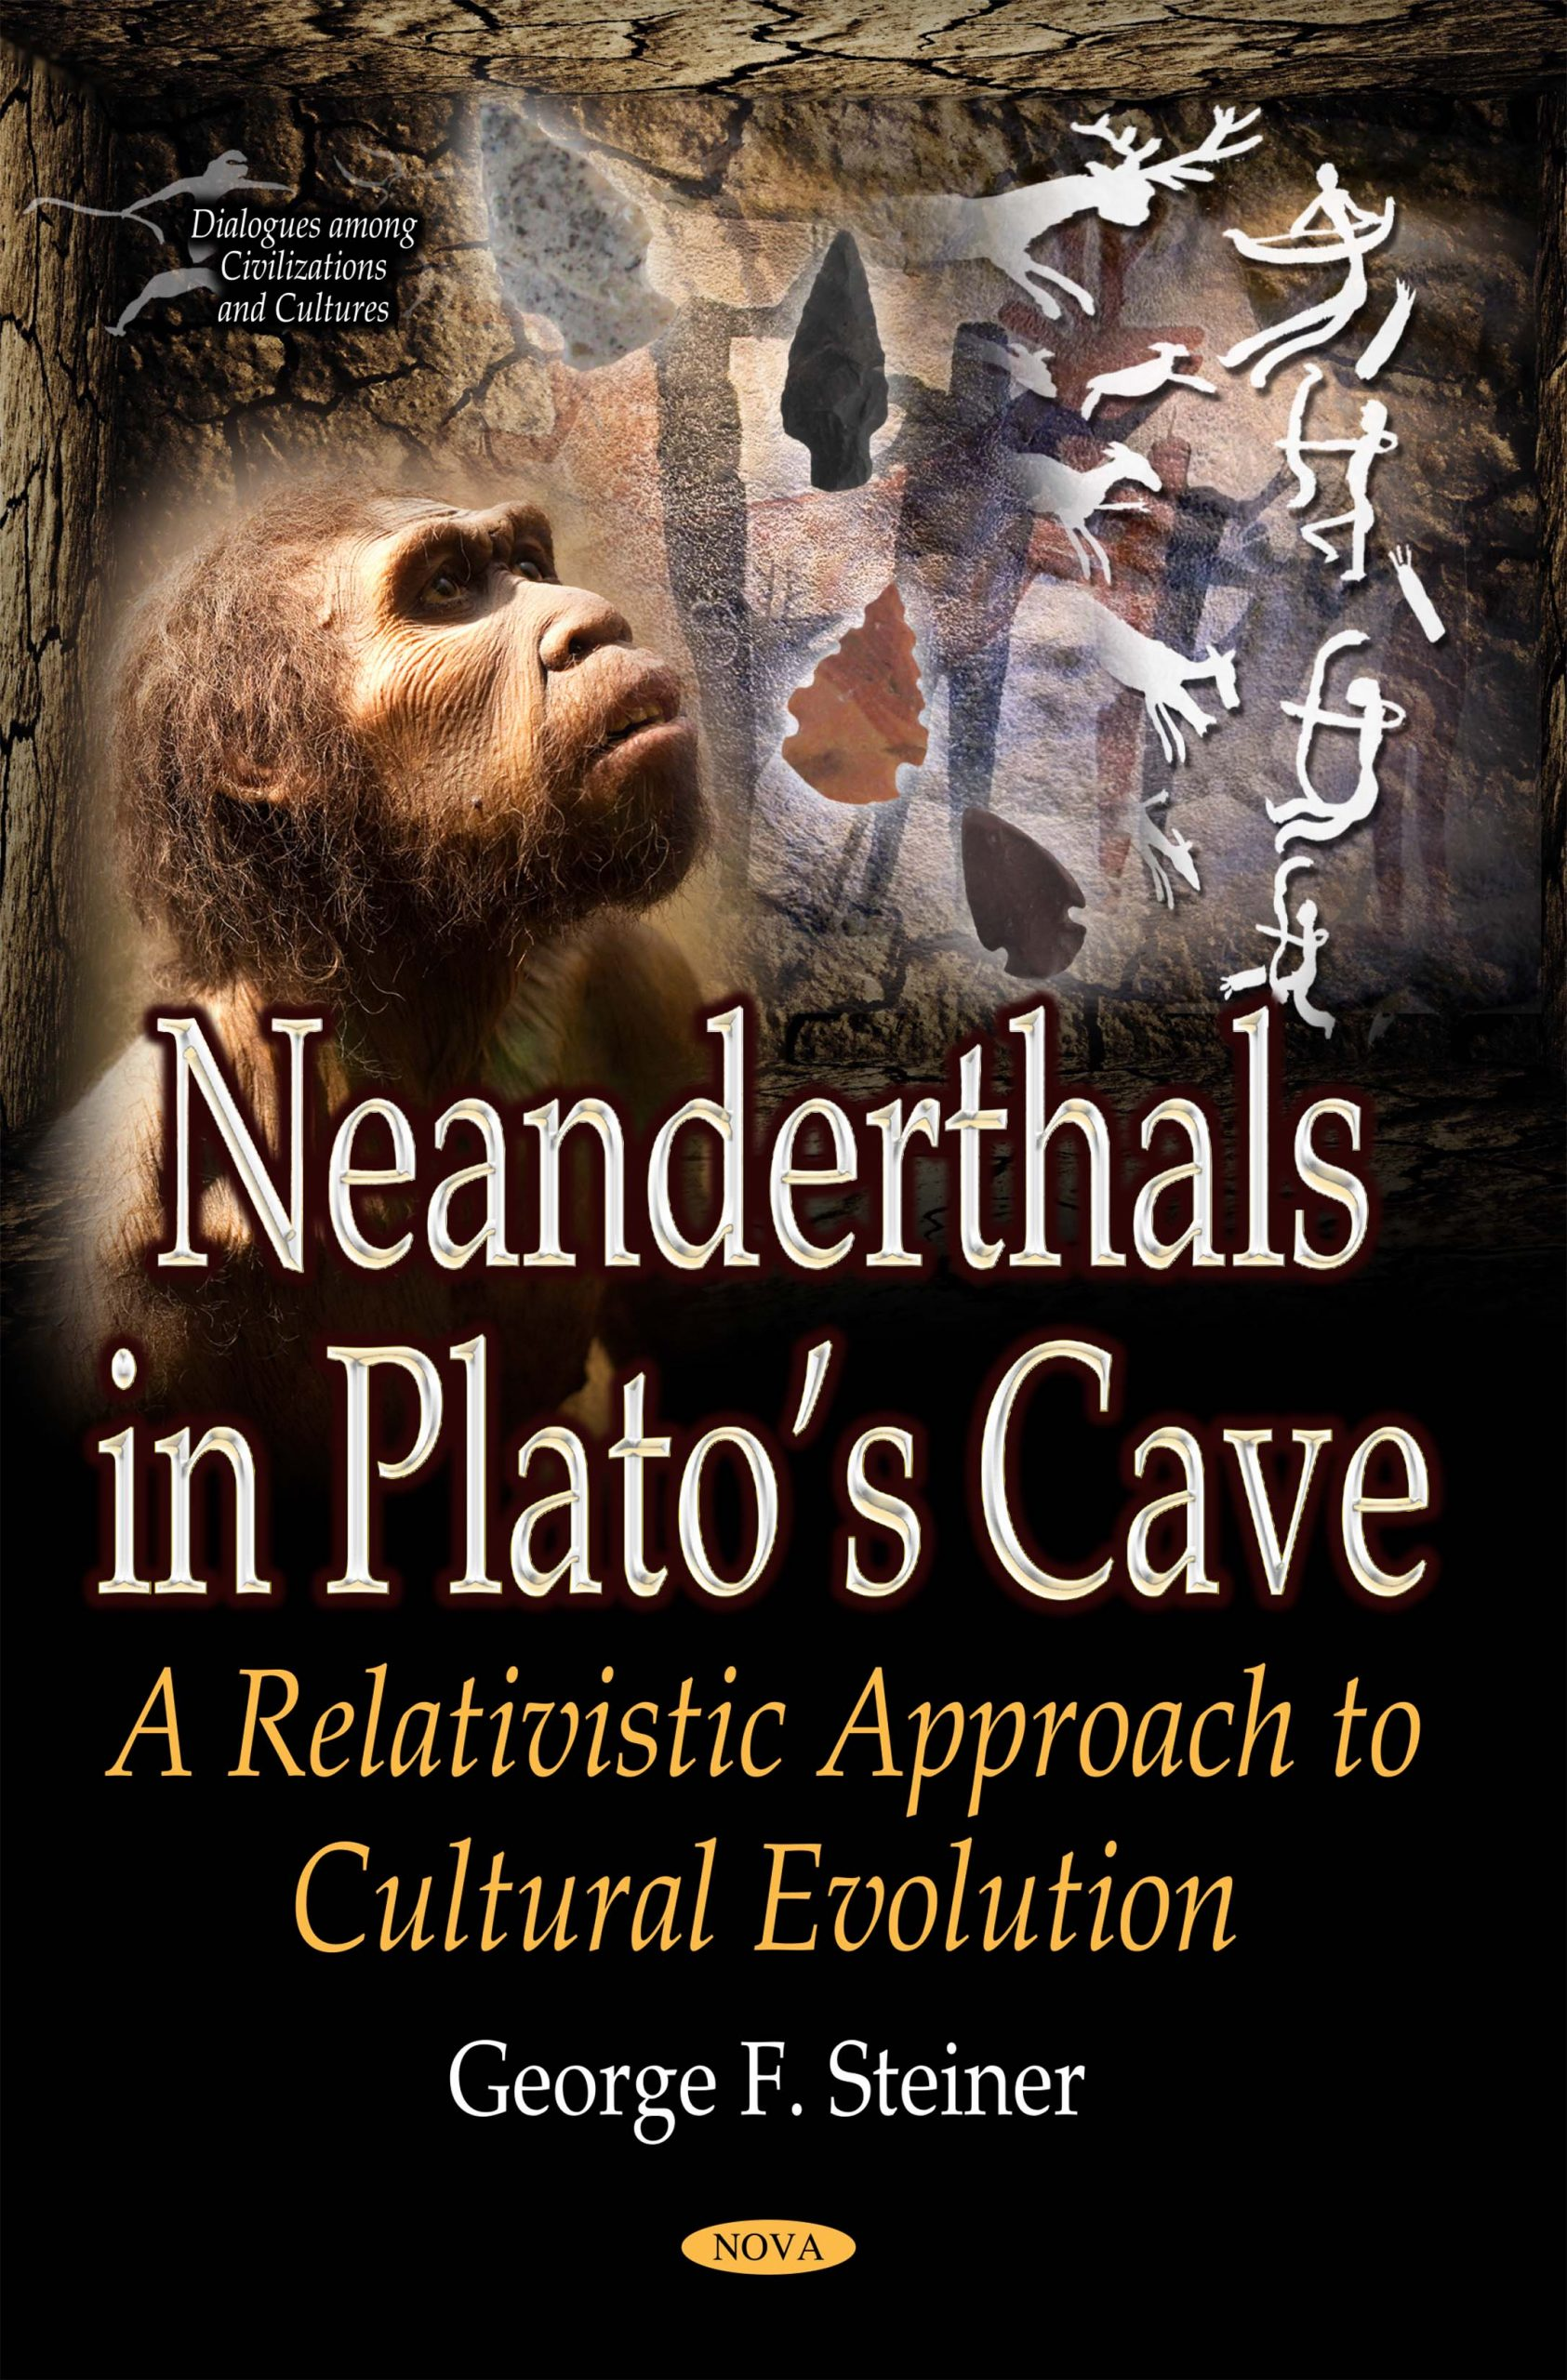 Neanderthals in Plato's Cave: A Relativistic Approach to Cultural Evolution